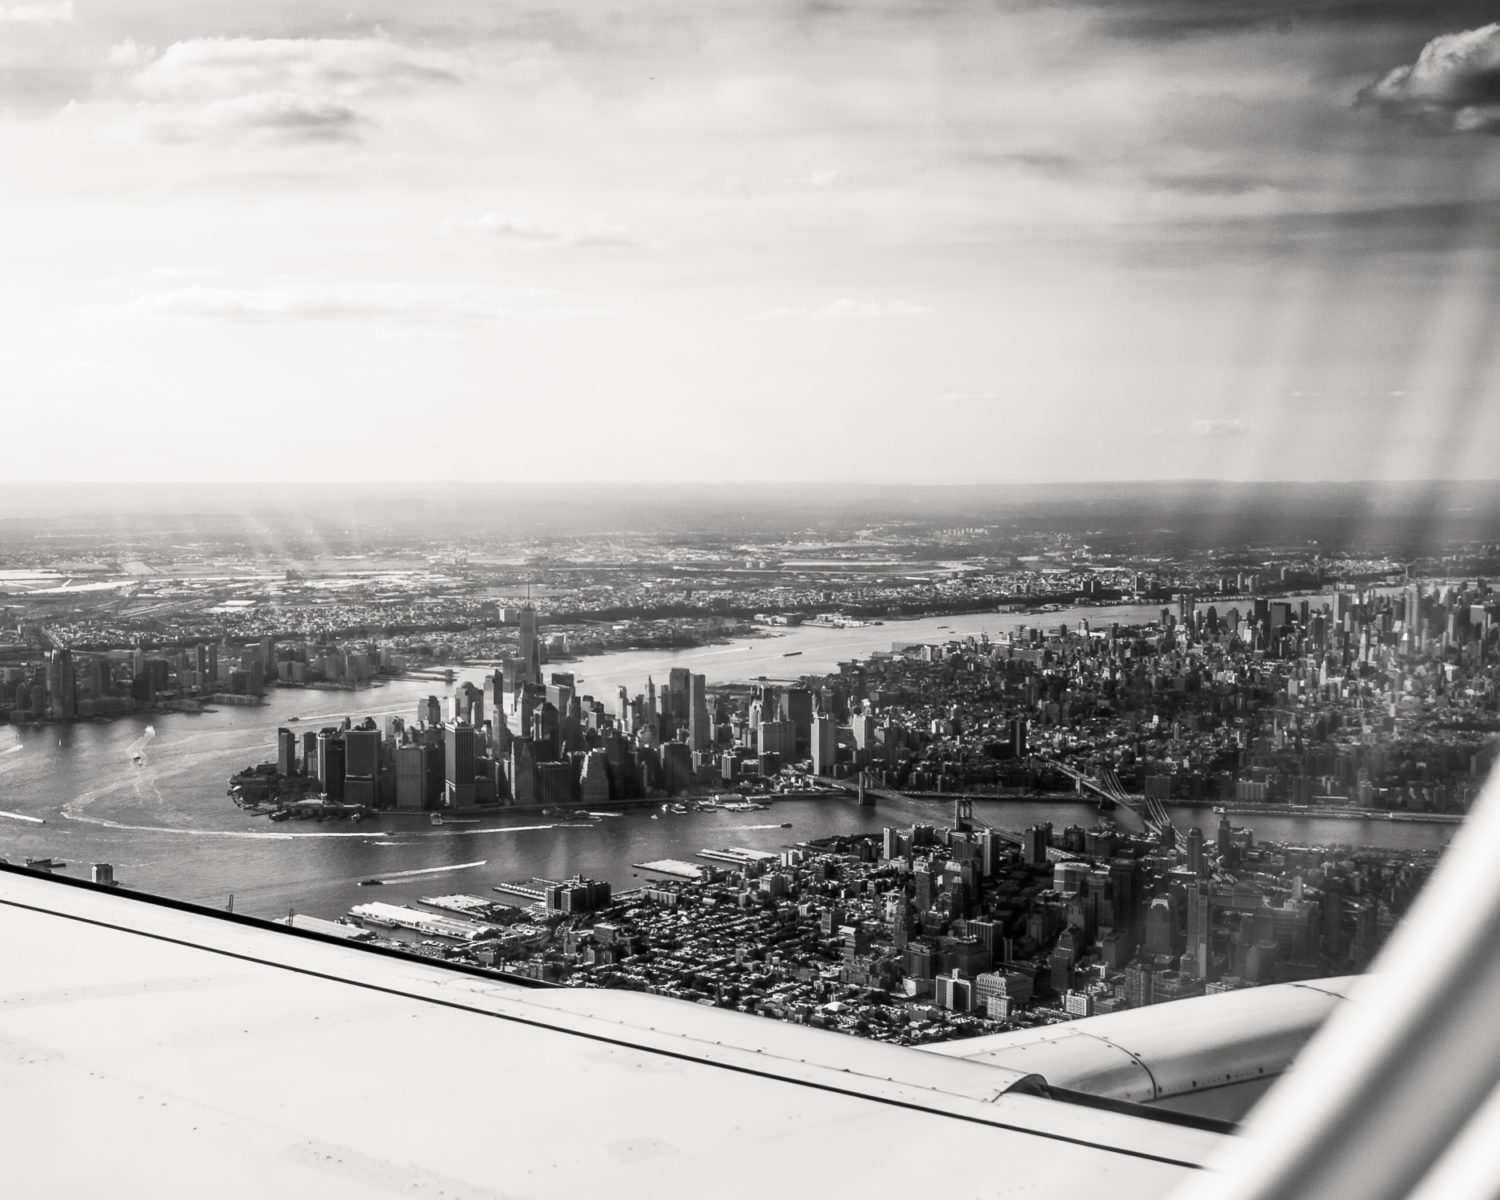 view of lower Manhattan from airplane window